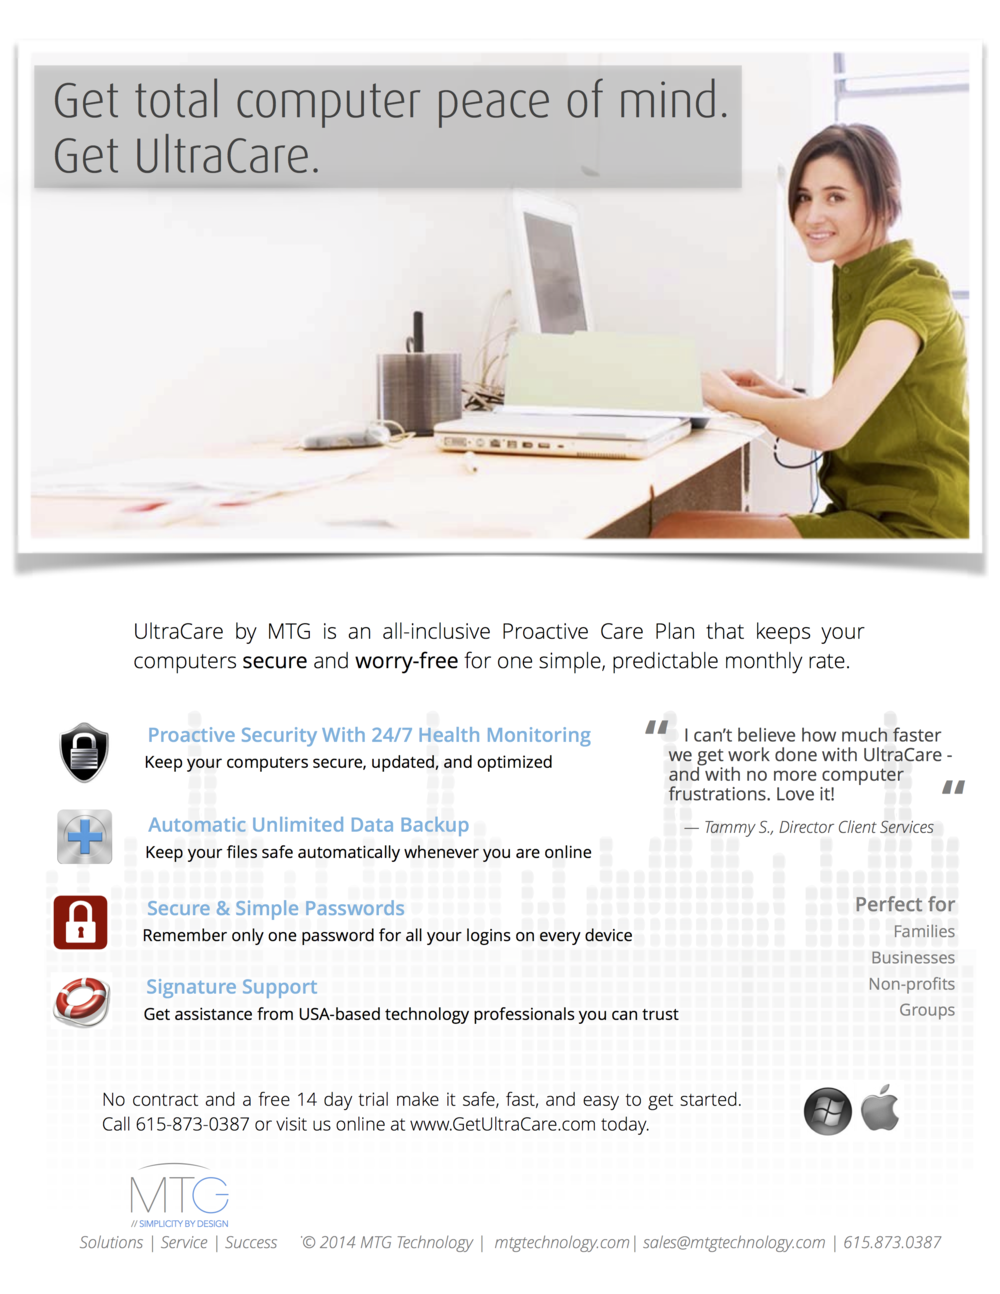 UltraCare_Brochure_1.png